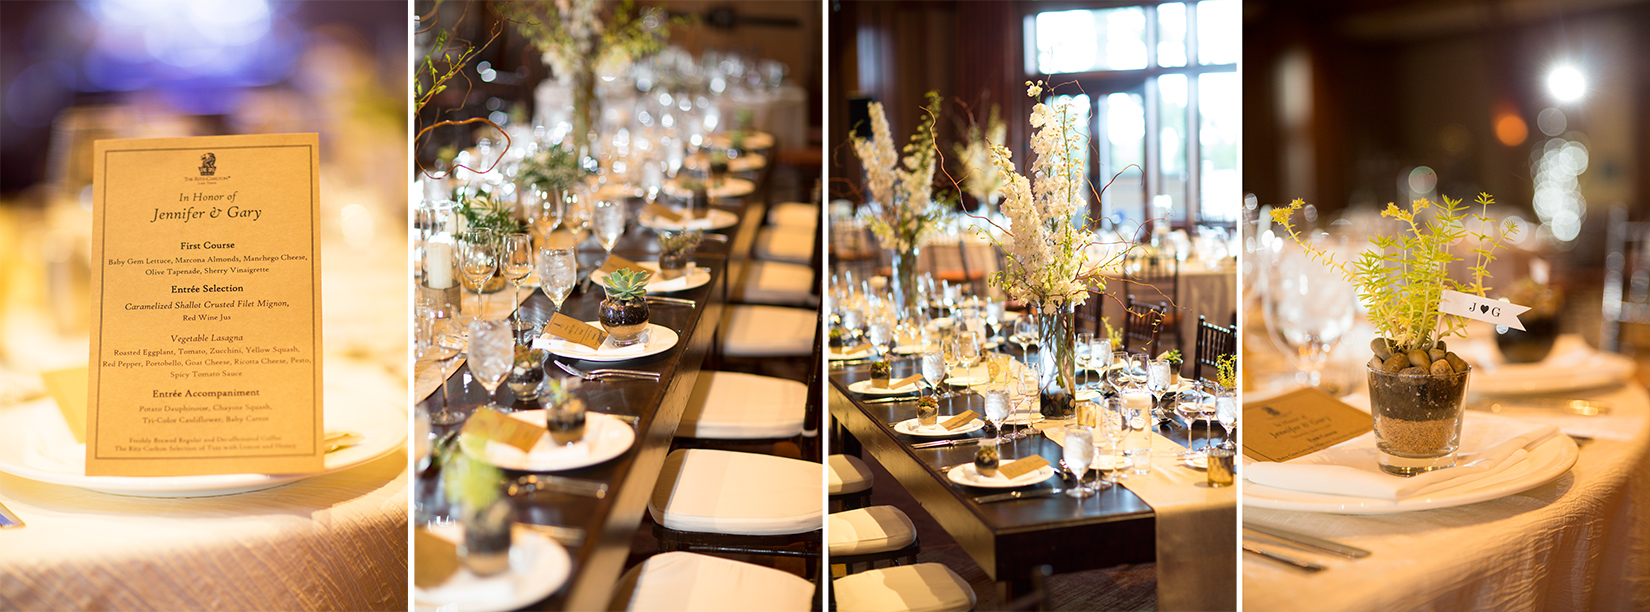 Tahoe-wedding-table-center-piece